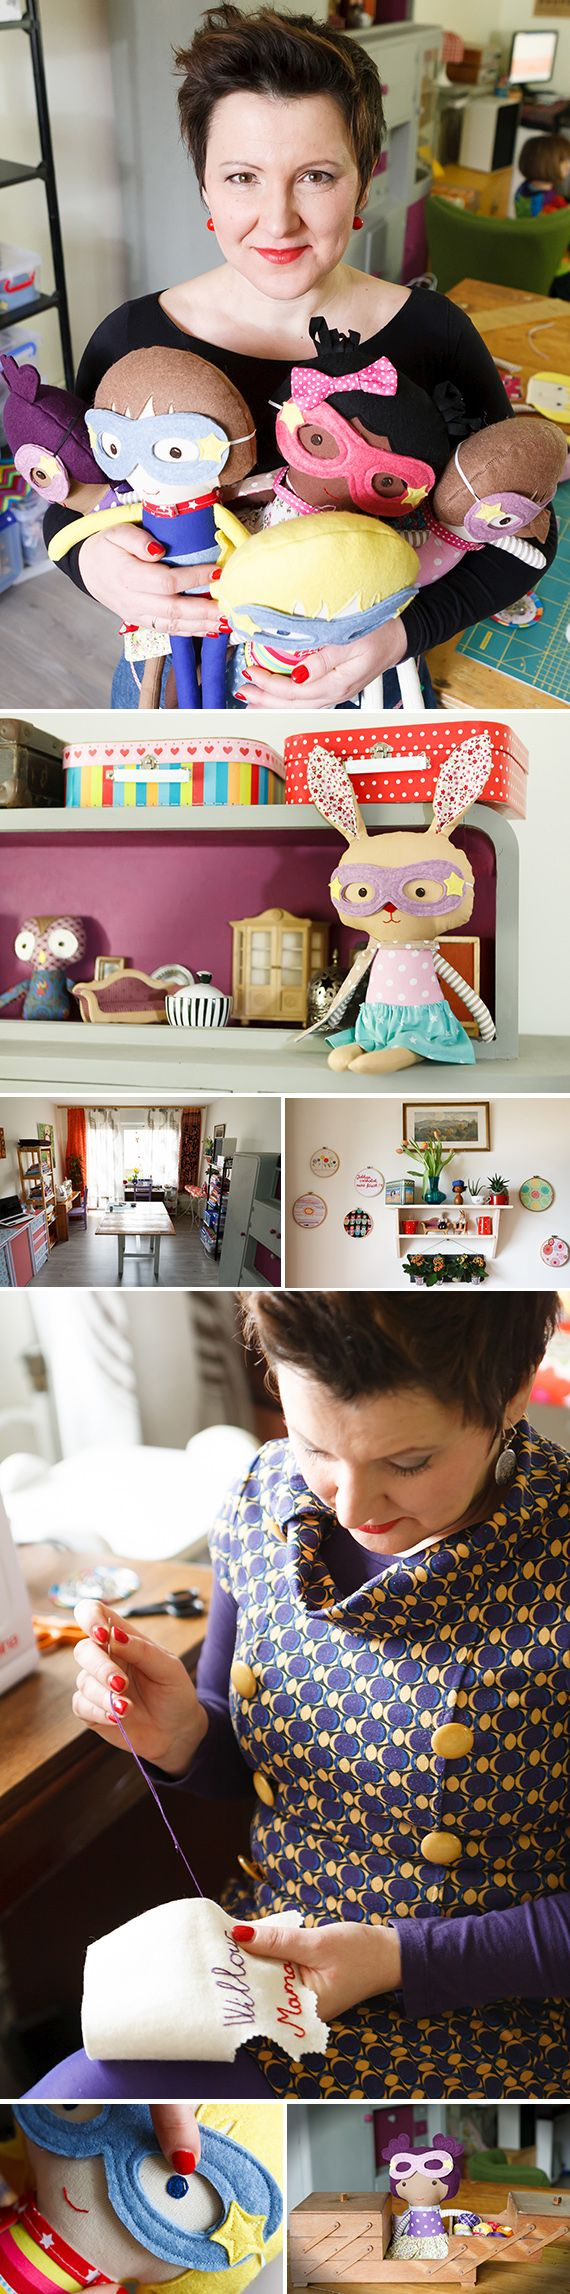 """""""I was looking for opportunities to express myself. Through sewing I found a way to get closer to who I wanted to be."""" Thanks to a midlife artistic awakening, this mom of three launched her own line of bespoke superhero dolls celebrating every child's unique strengths. Meet Emese"""